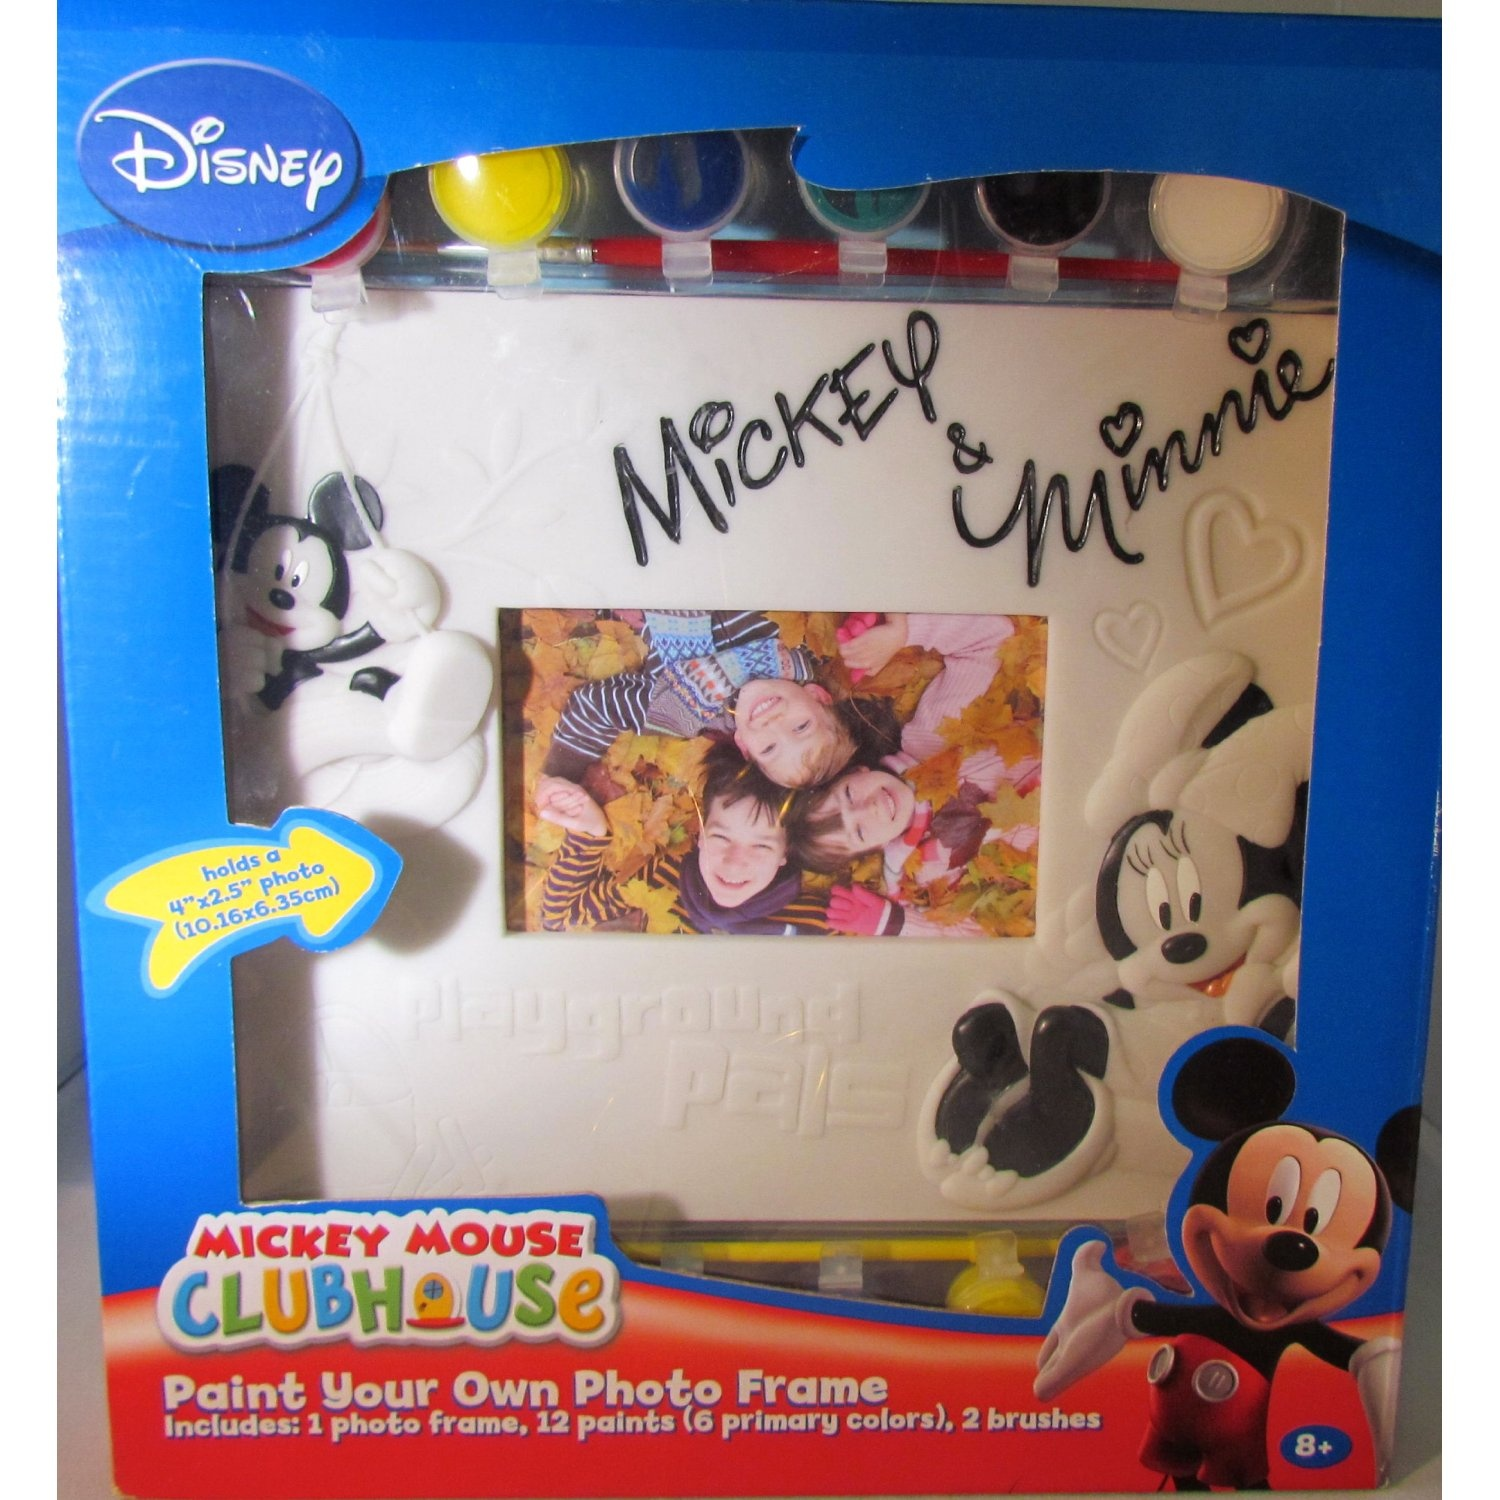 Disney Paint Your Own Photo Frame Mickey Mouse Clubhouse Mickey